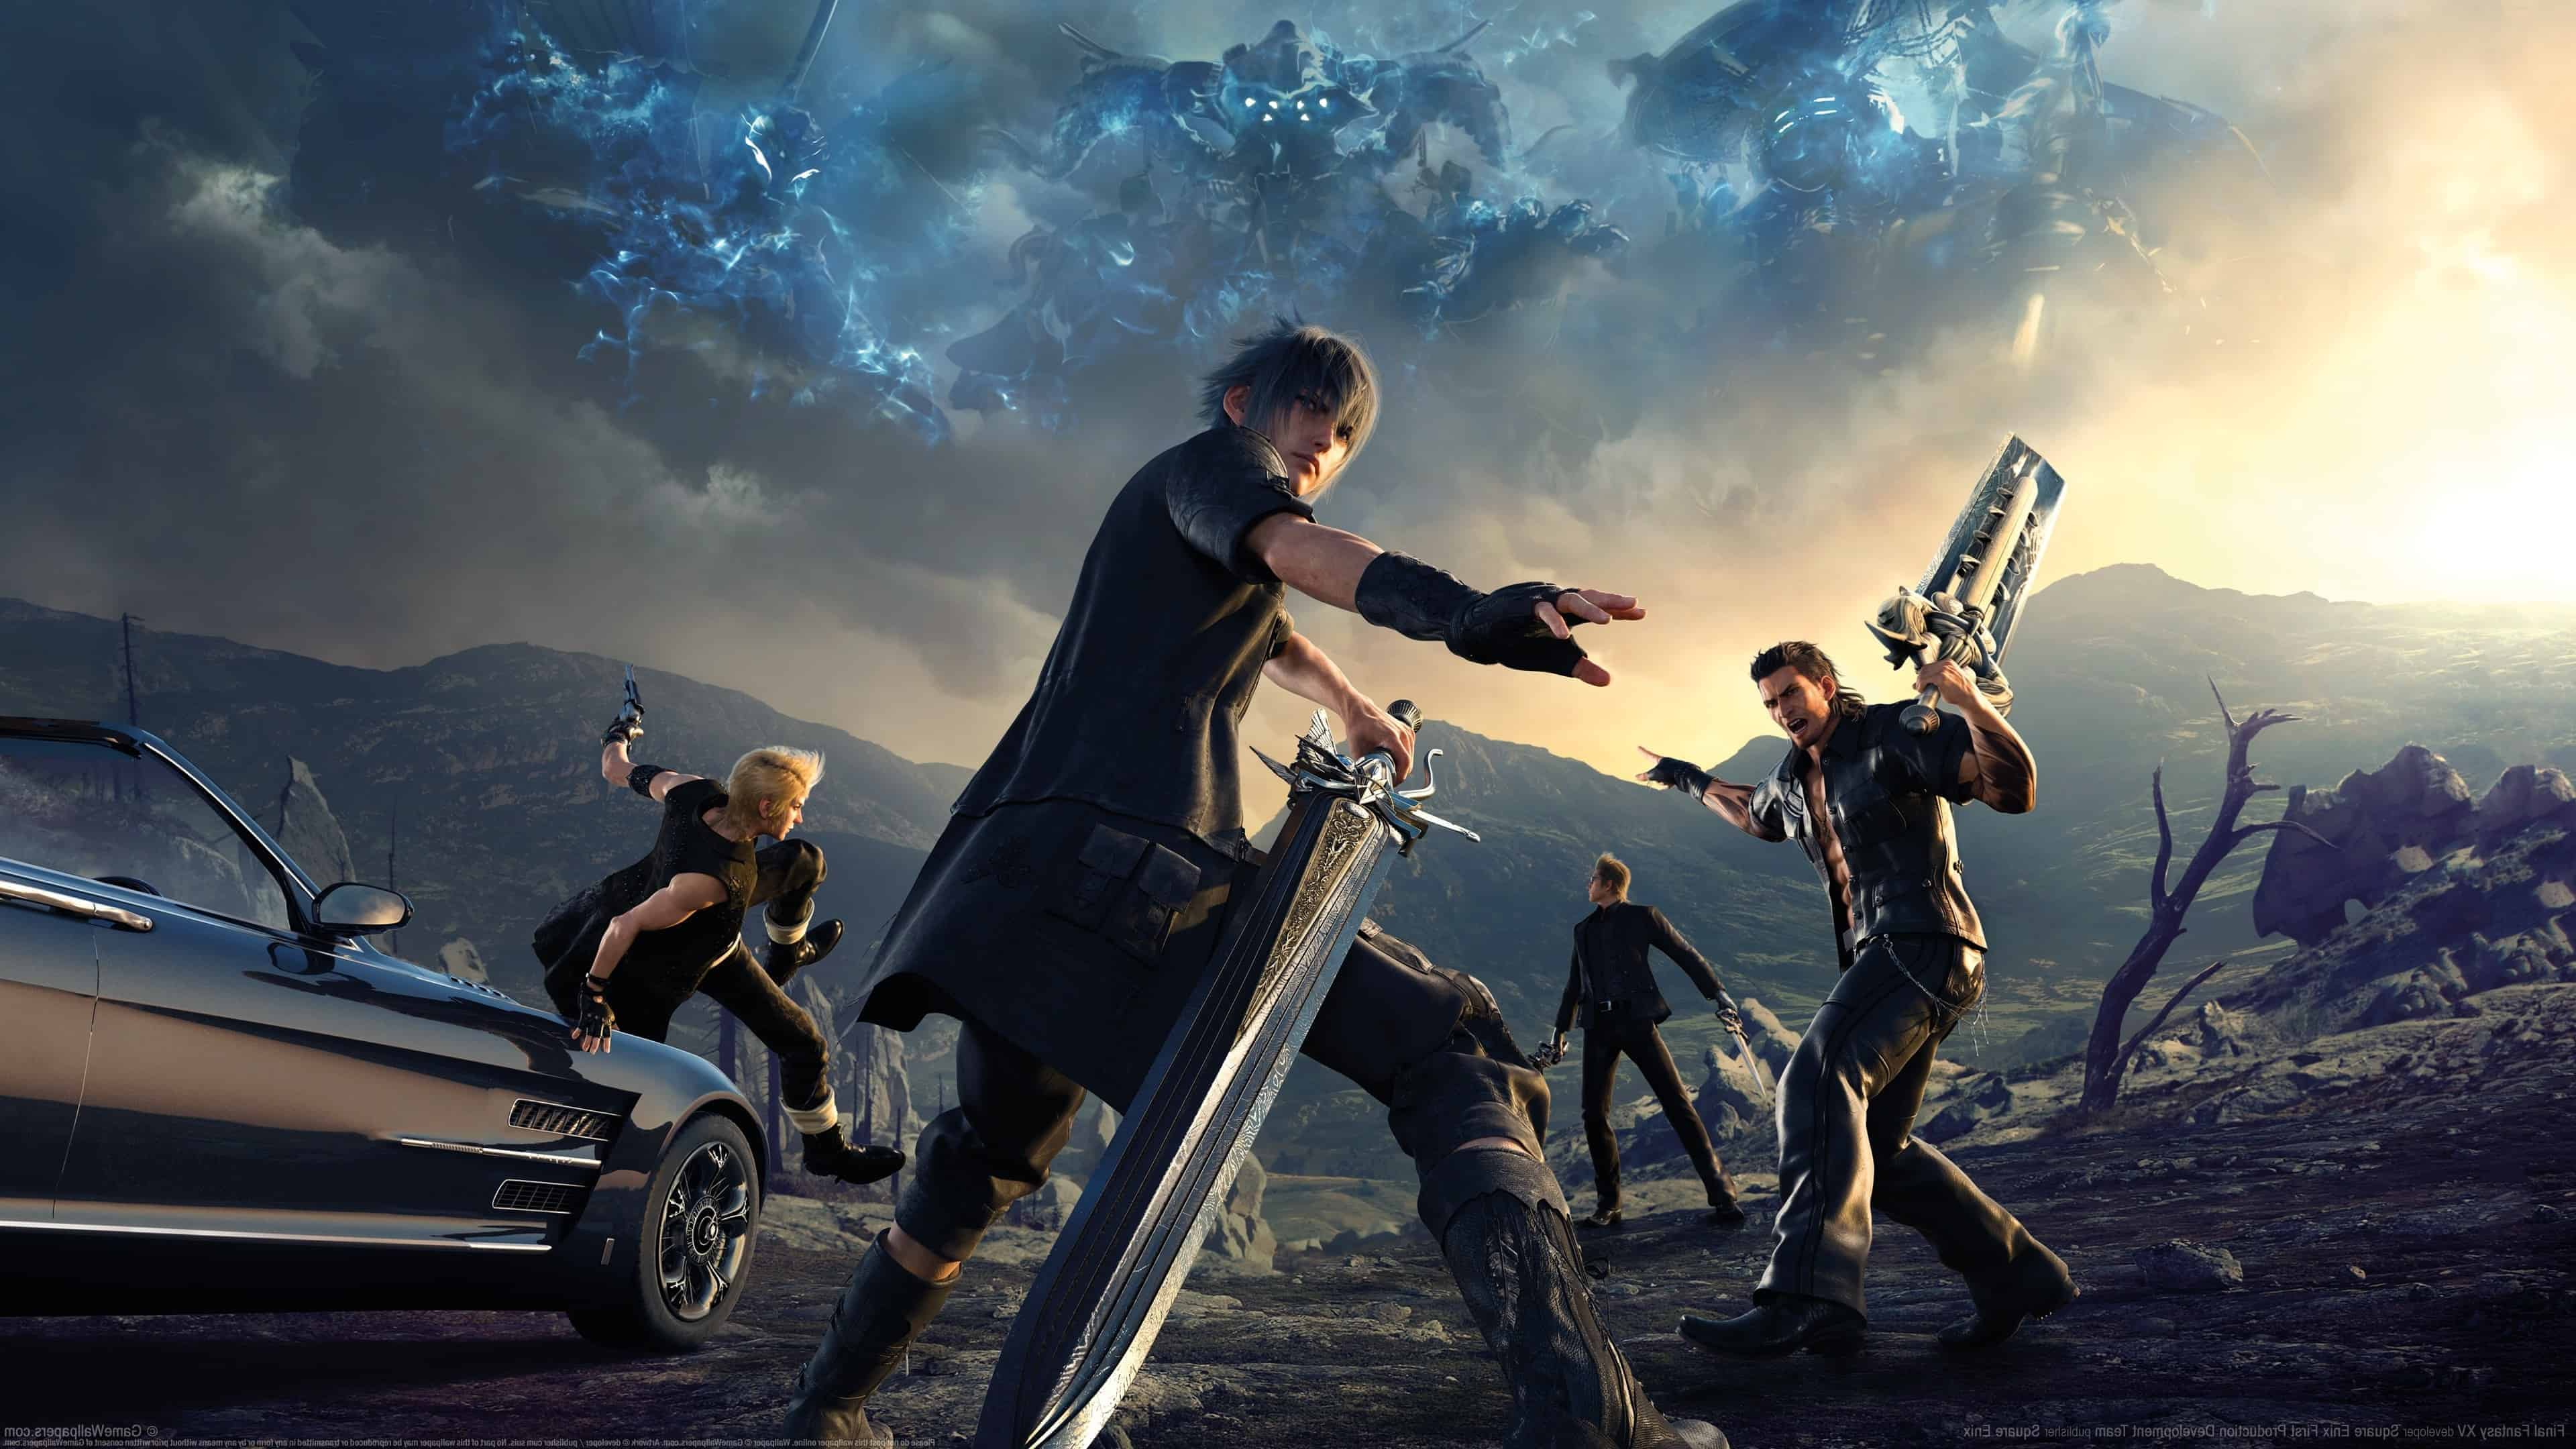 Final Fantasy Xv Wallpapers In Ultra Hd